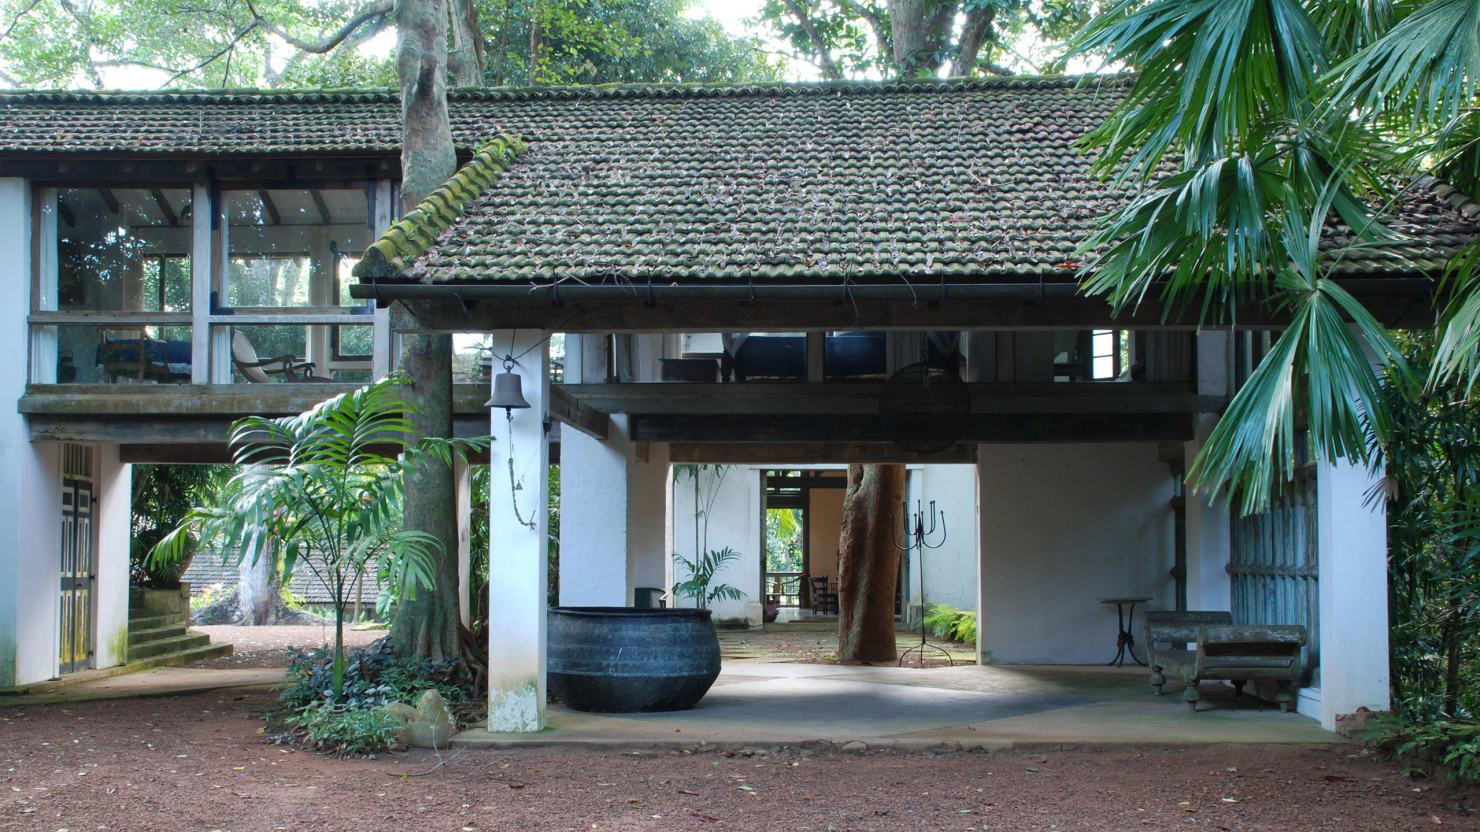 How Architect Geoffrey Bawa Improved His Corner of Paradise